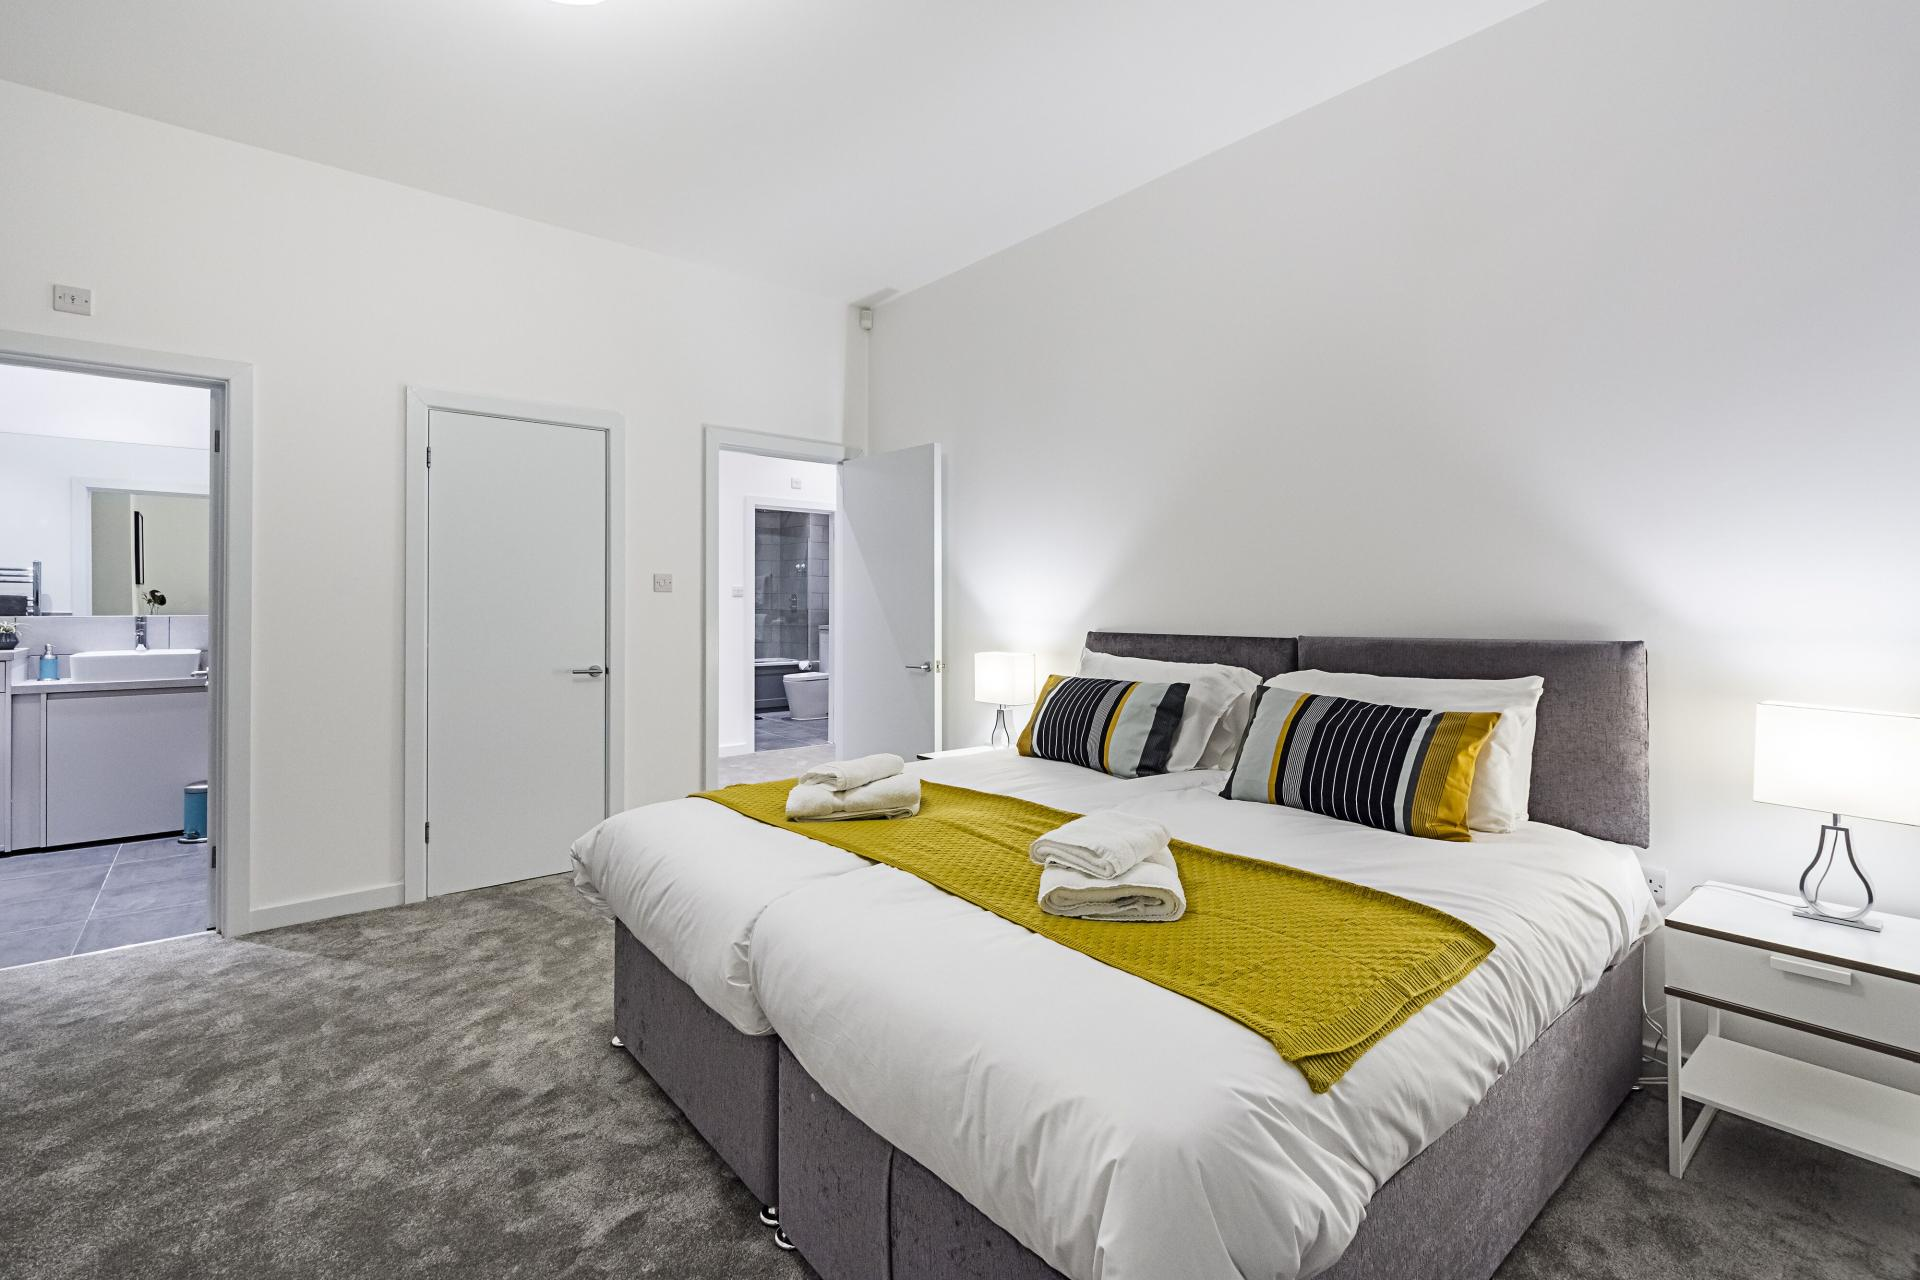 Zip and link beds at Vibrant Vauxhall Apartments - Citybase Apartments